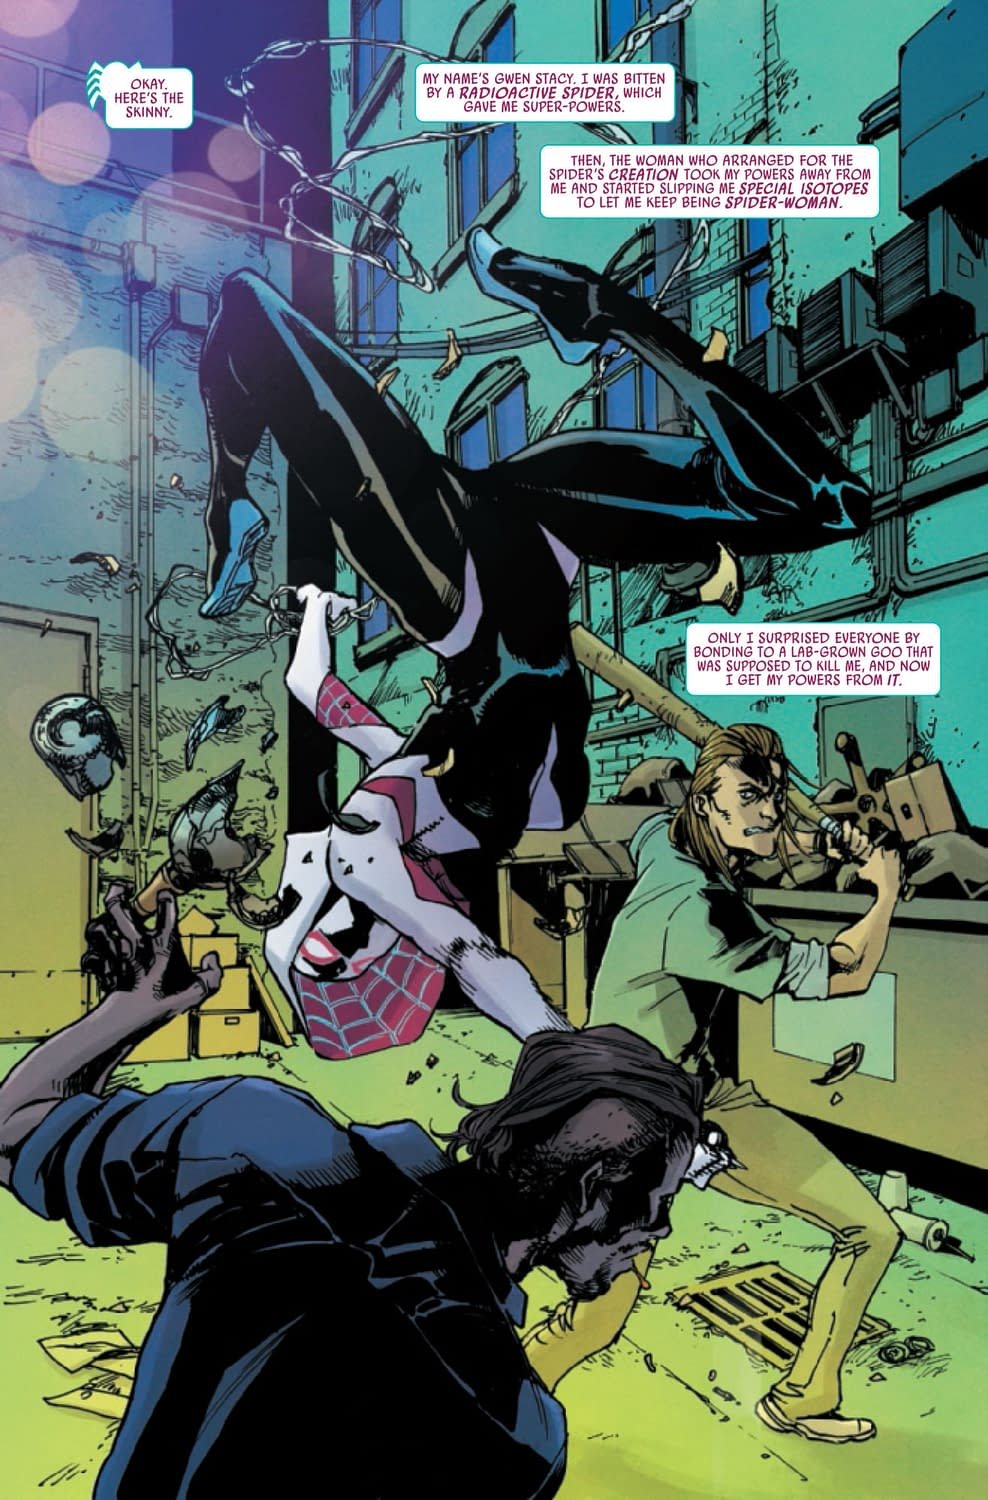 Powerless, and Trapped in the 616 - Spider-Gwen: Ghost Spider #10 Preview